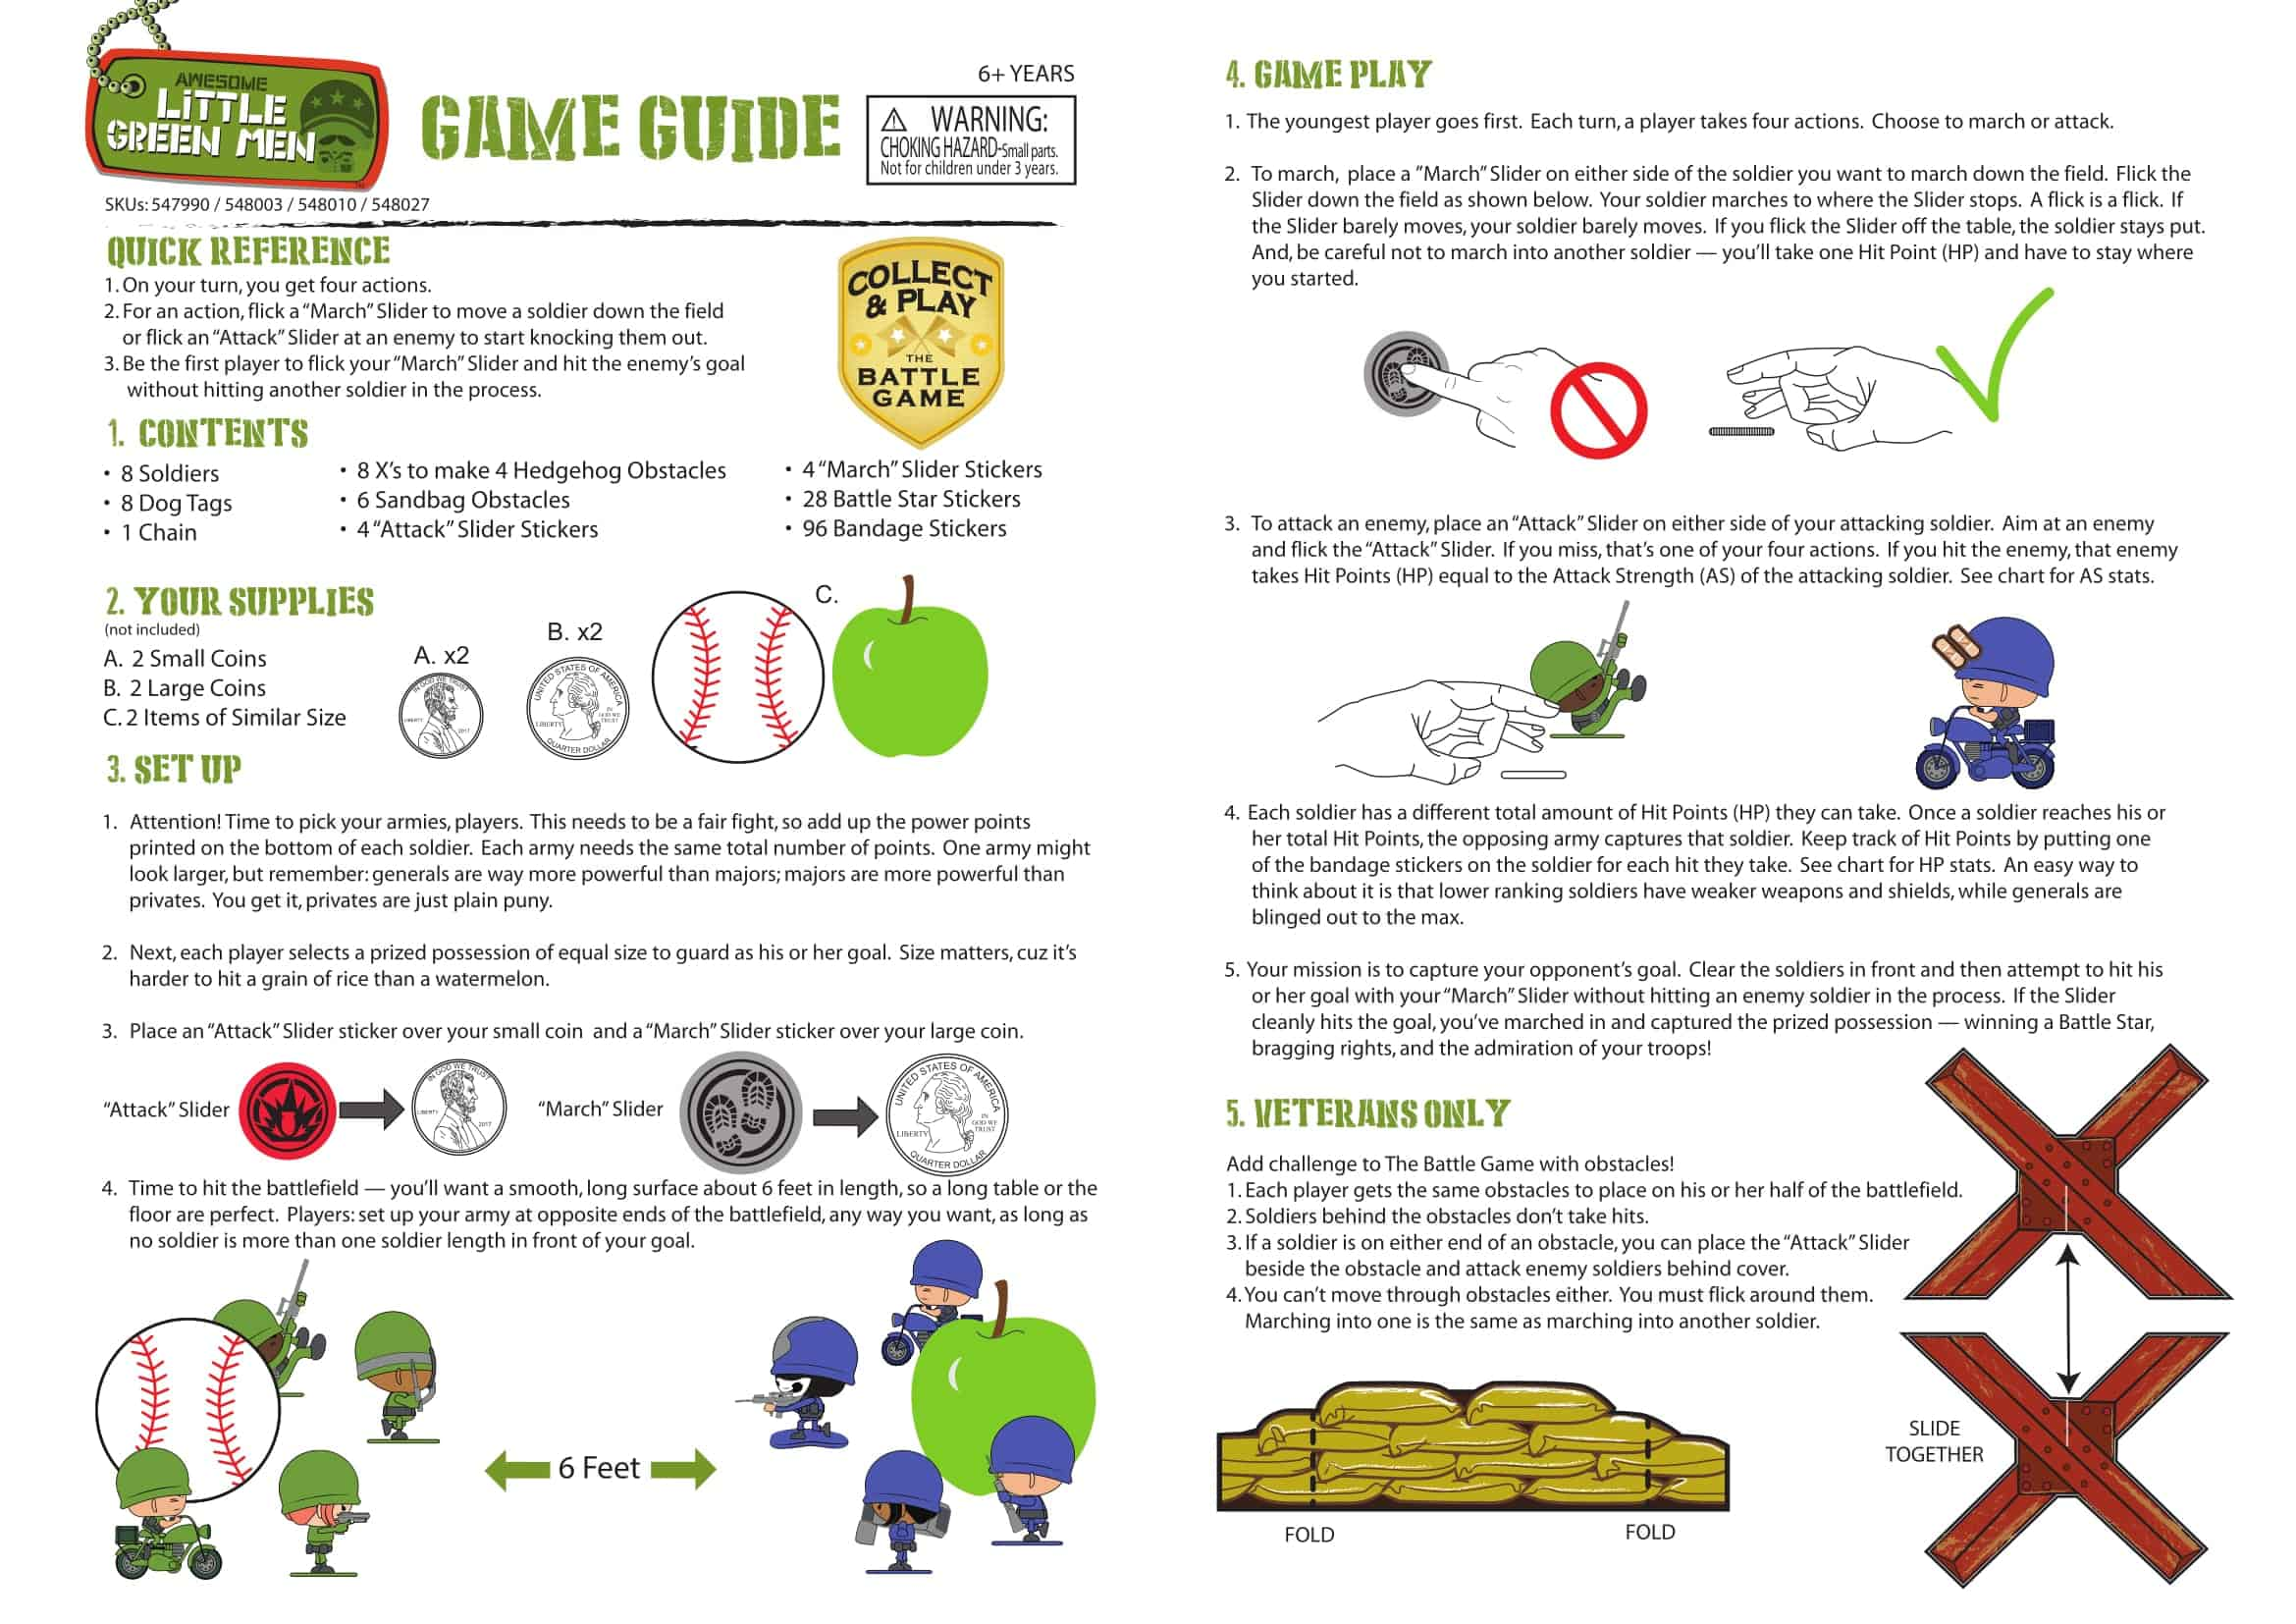 ALGM Game Play Instructions-1